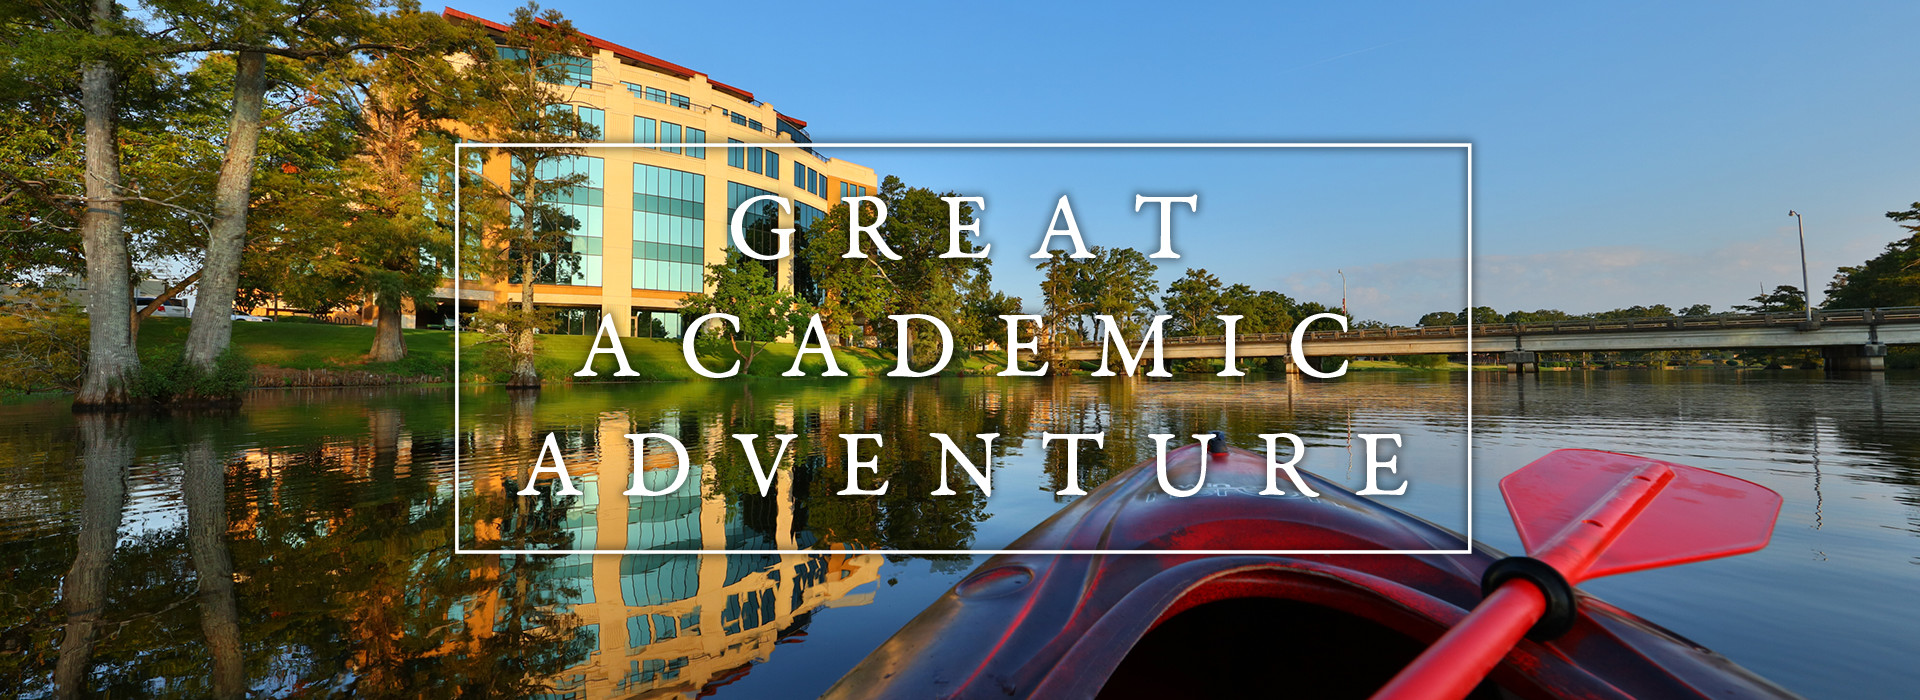 great academic adventure ad